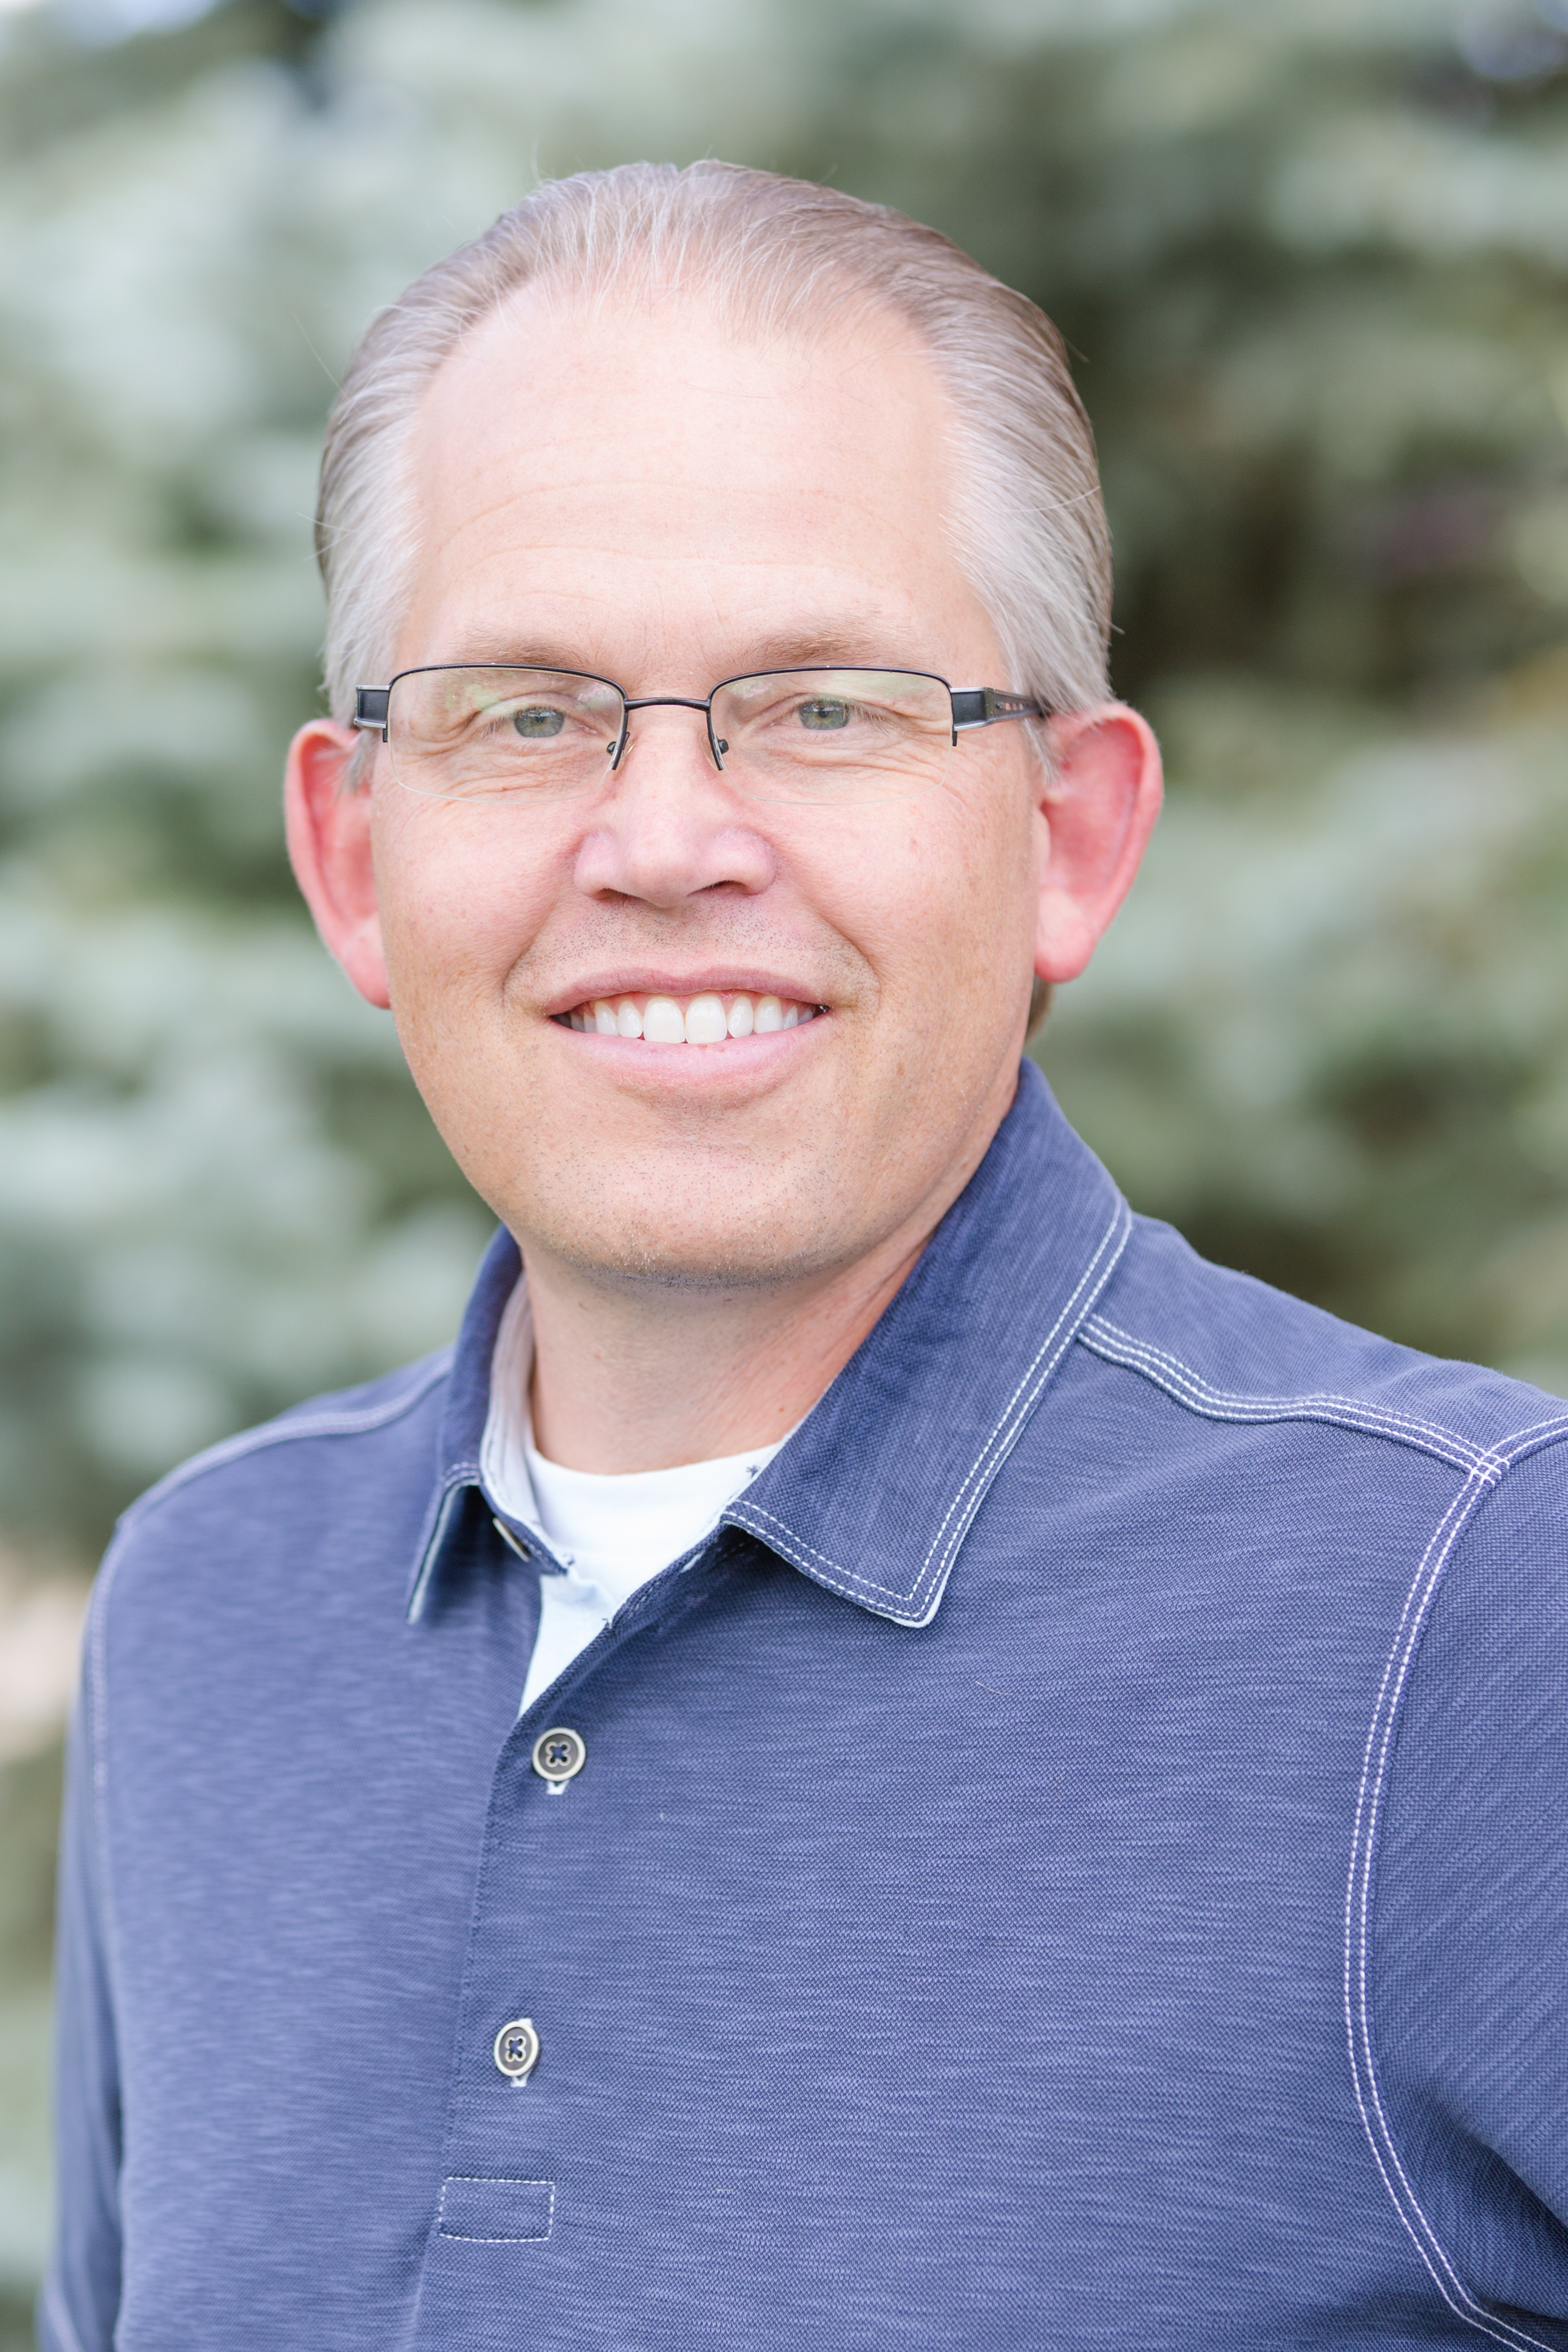 Meet Scott E. Peterson, DDS - Montrose Dentist